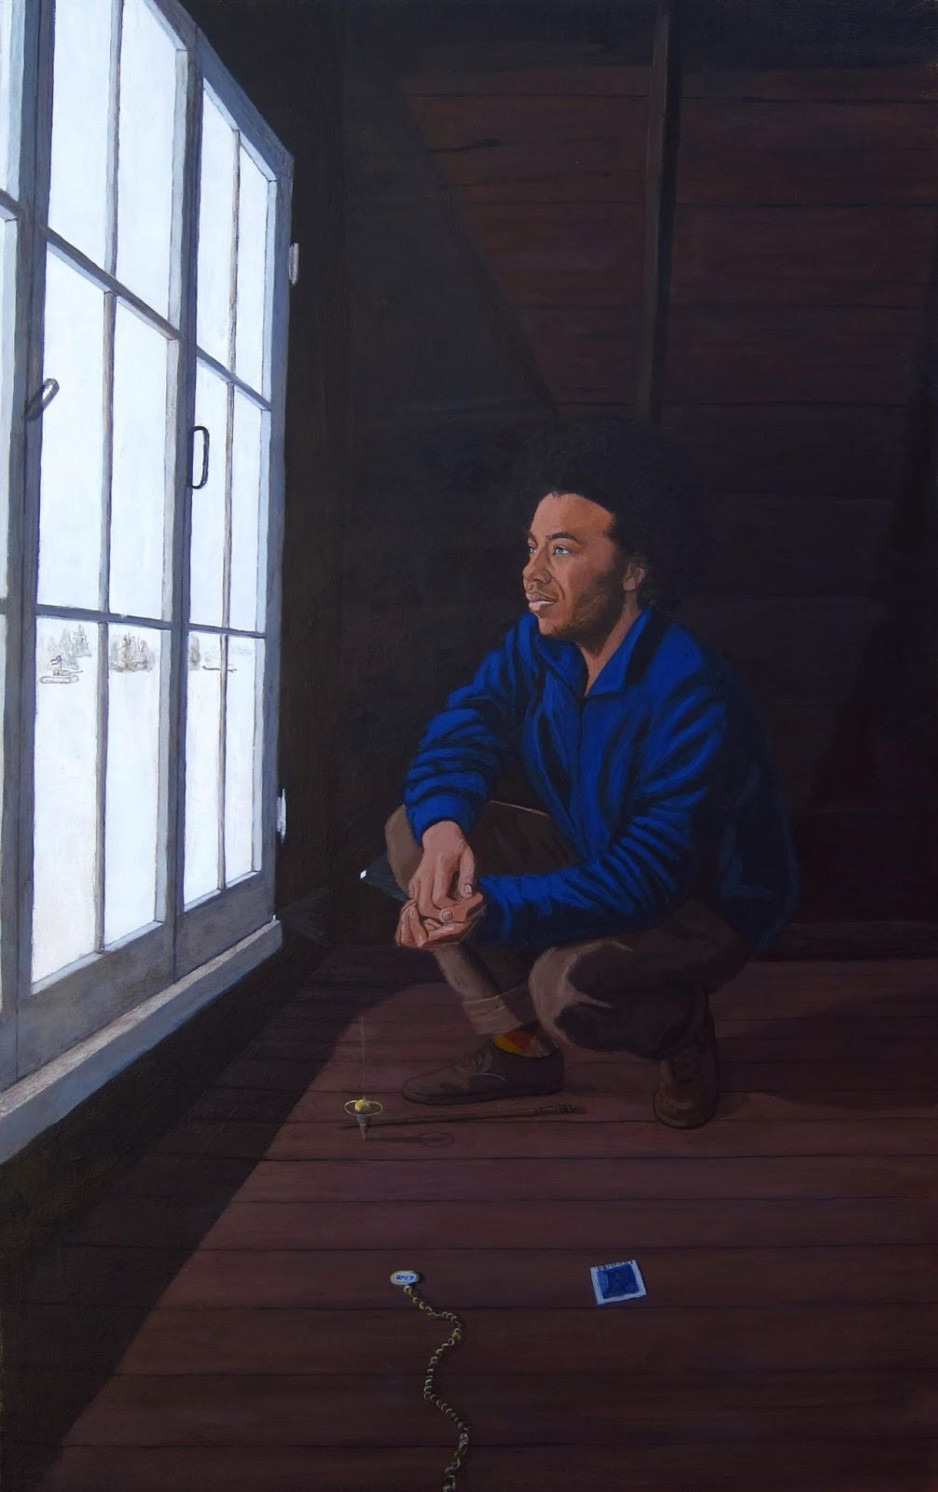 A painting of a young man on one knew, looking out the window, presumably contemplating.